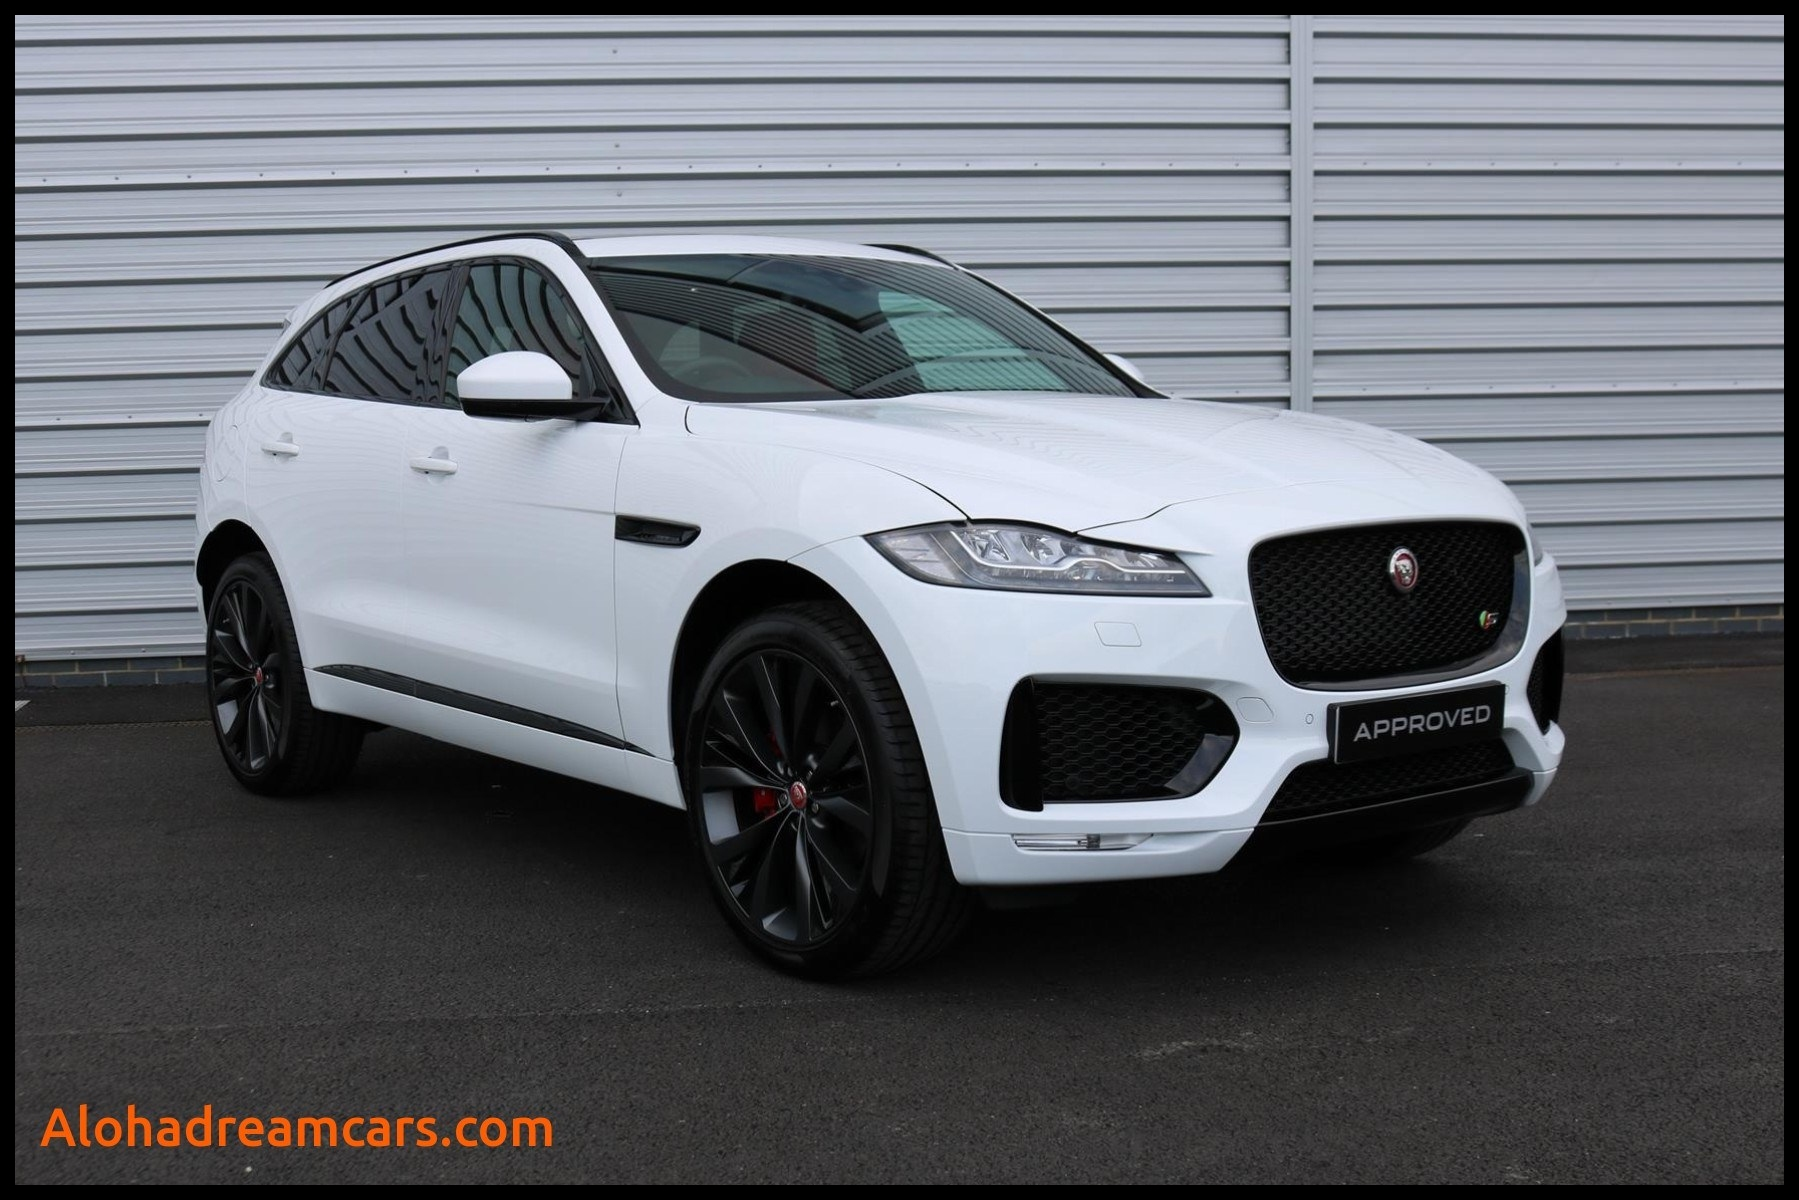 Q5 Audi 2018 Review 2018 Audi Q5 Overview Hot News 2018 Rs3 Used 2018 Jaguar F